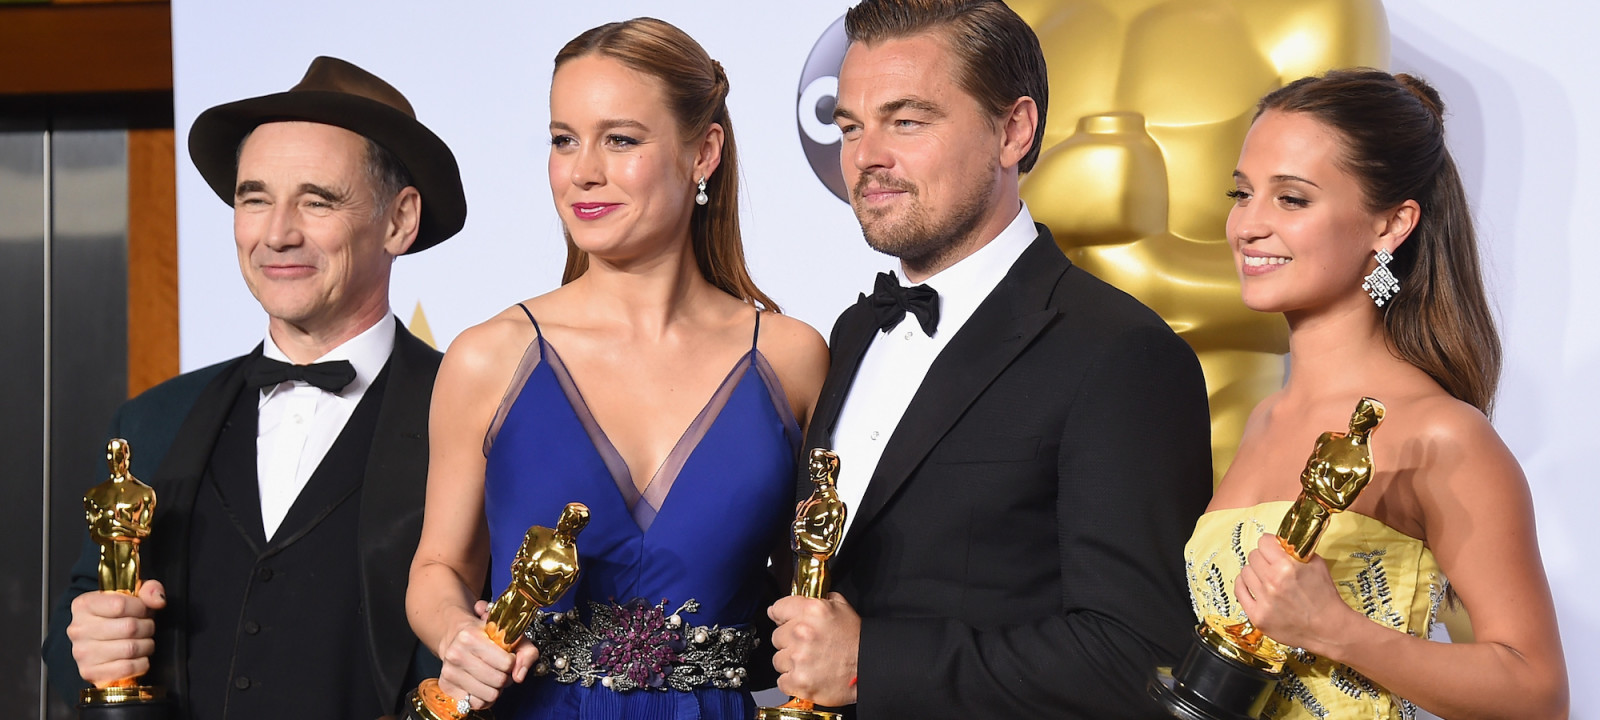 Actor Mark Rylance, winner of Best Supporting Actor for 'Bridge of Spies,' actress Brie Larson, winner of Best Actress for 'Room,' actor Leonardo DiCaprio, winner of Best Actor for 'The Revenant,' and actress Alicia Vikander, winner of Best Supporting Actress for 'The Danish Girl,' pose in the press room during the 88th Annual Academy Awards at Loews Hollywood Hotel on February 28, 2016 in Hollywood, California.